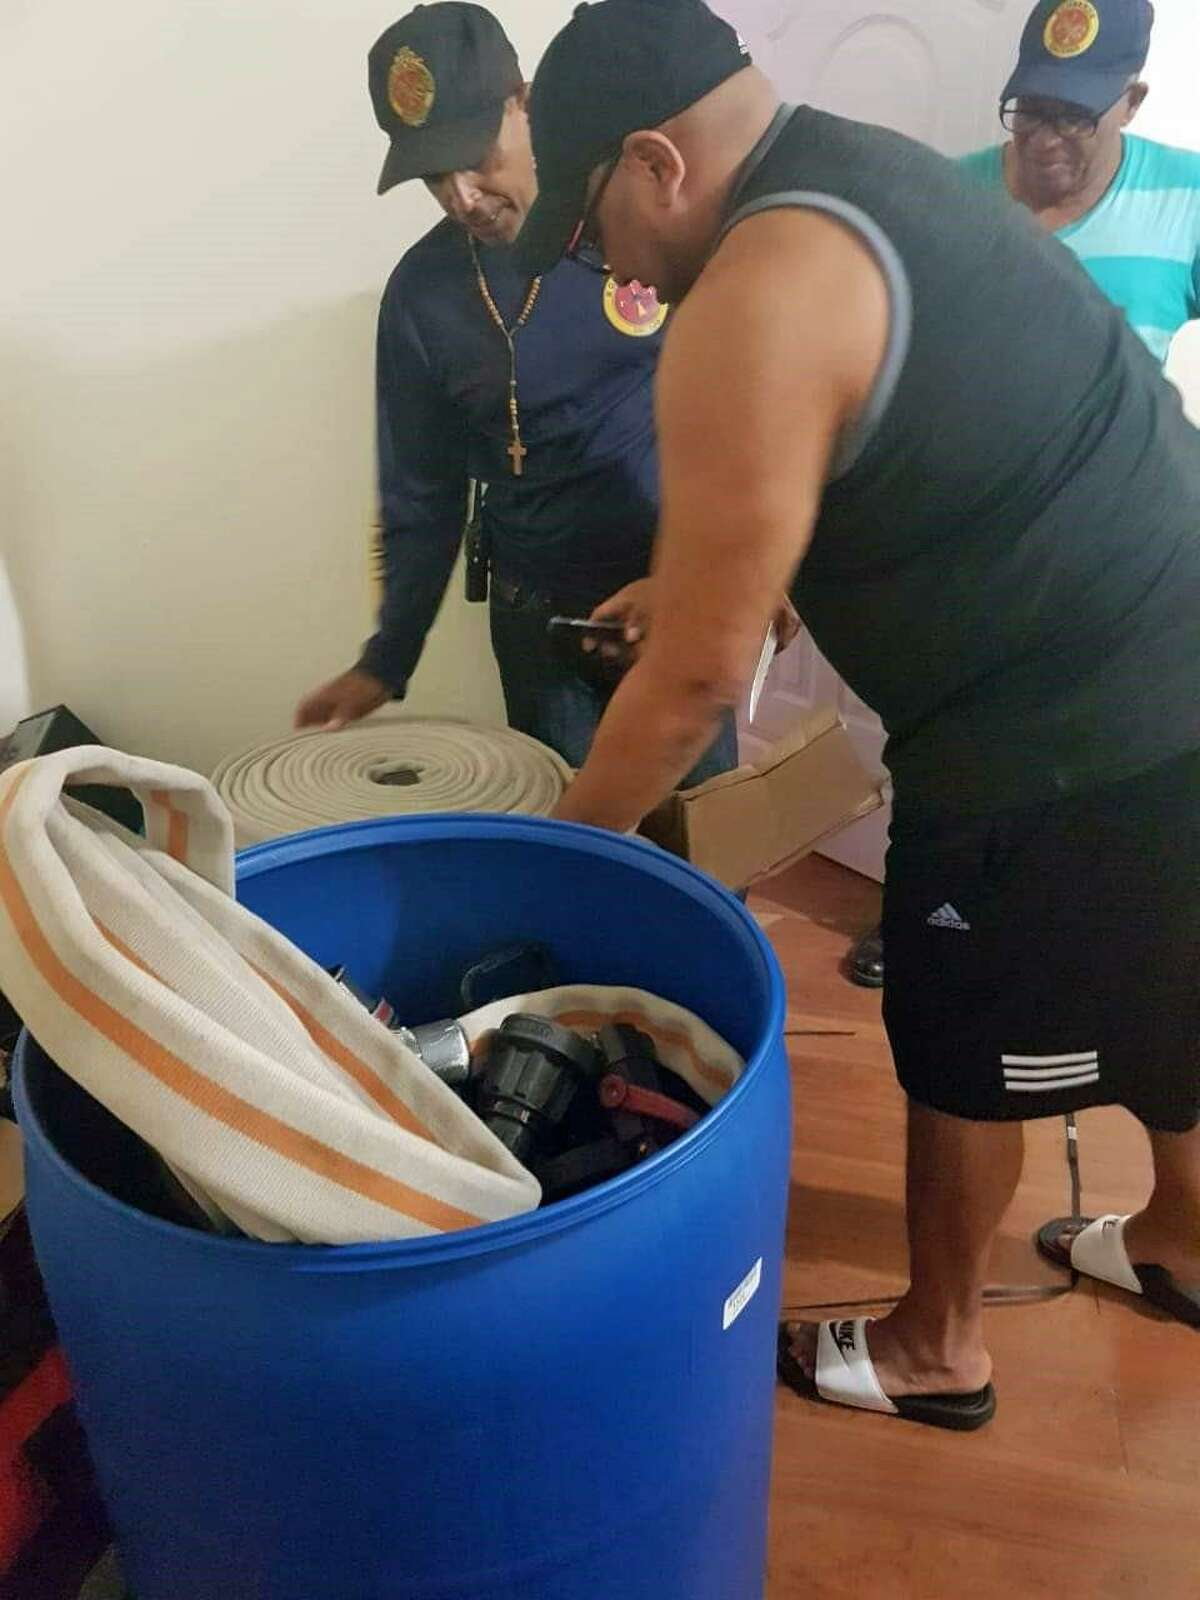 Salcedo firefighters go through barrels of donated supplies provided by the Westport Fire Department. The city of Salcedo, Dominican Republic, purchased and refurbished an old Westport firetruck, which will be dedicated in Salcedo during a ceremony on March 9, 2019.